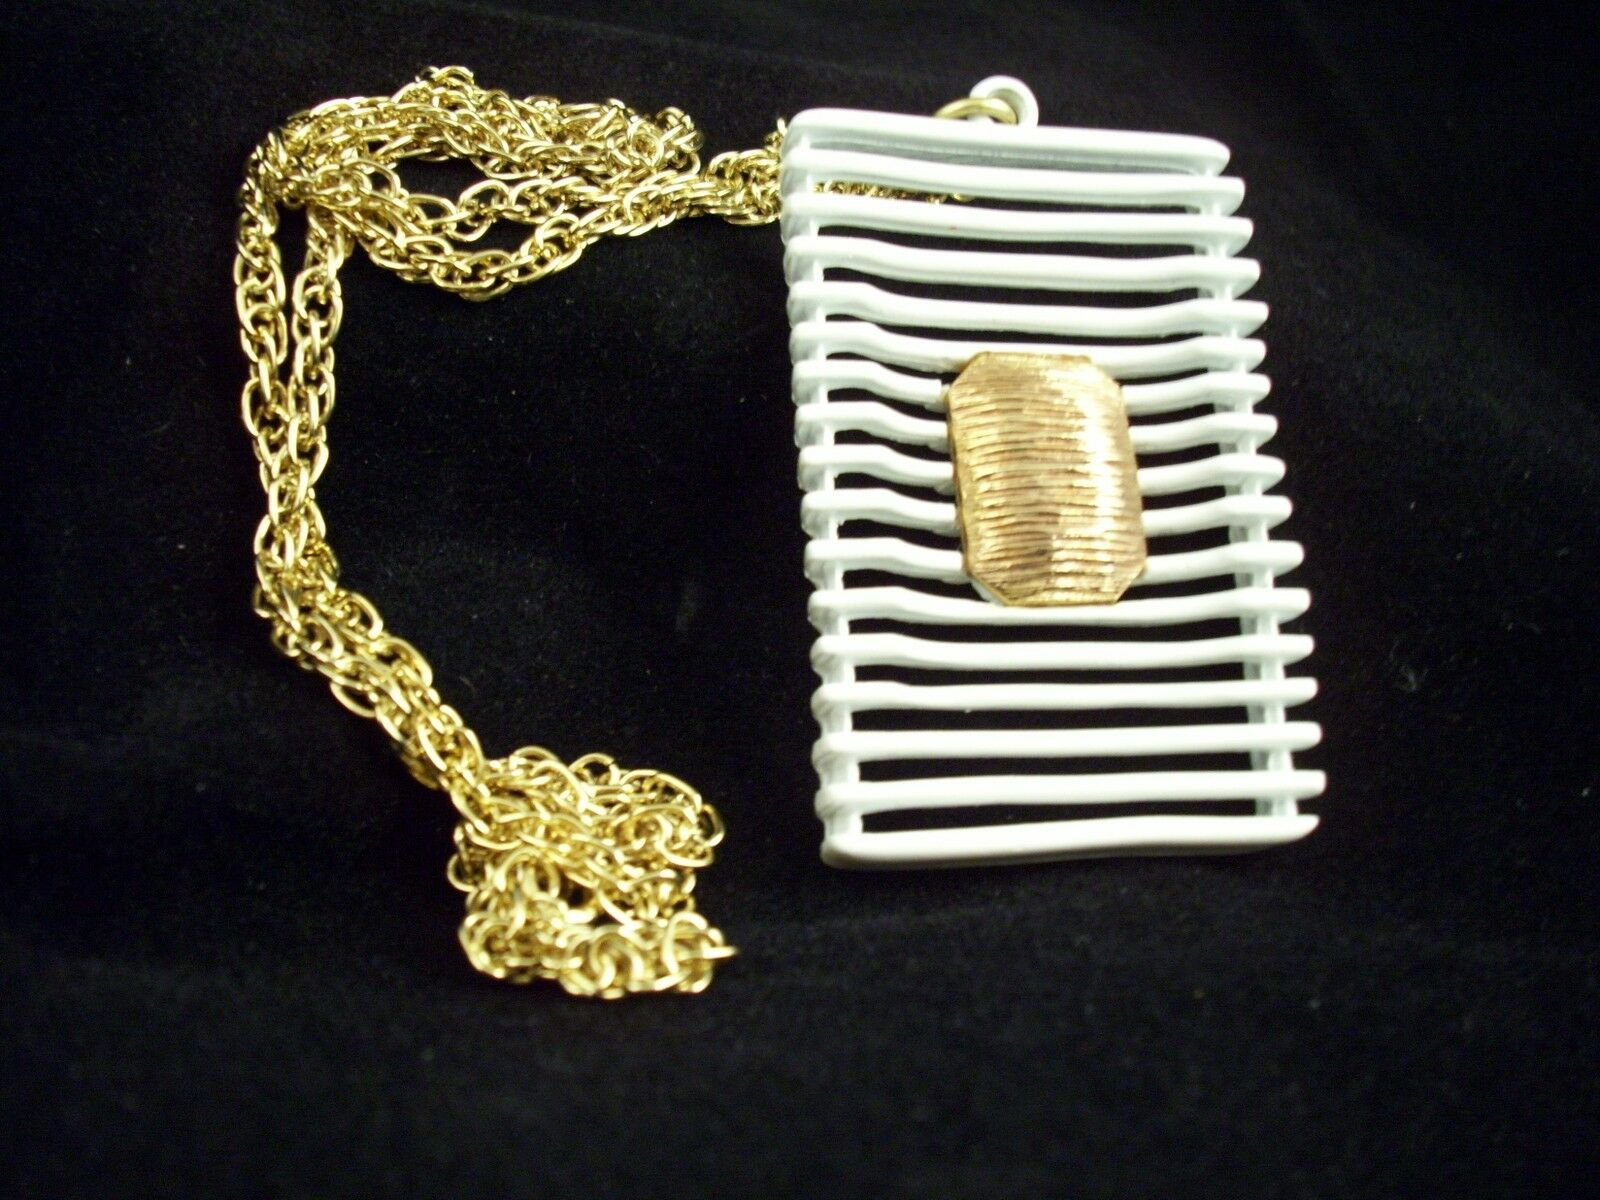 JJ ABSTRACT  WHITE Enamel Pendant Necklace Gold Plate Avant Garde GEOMETRIC